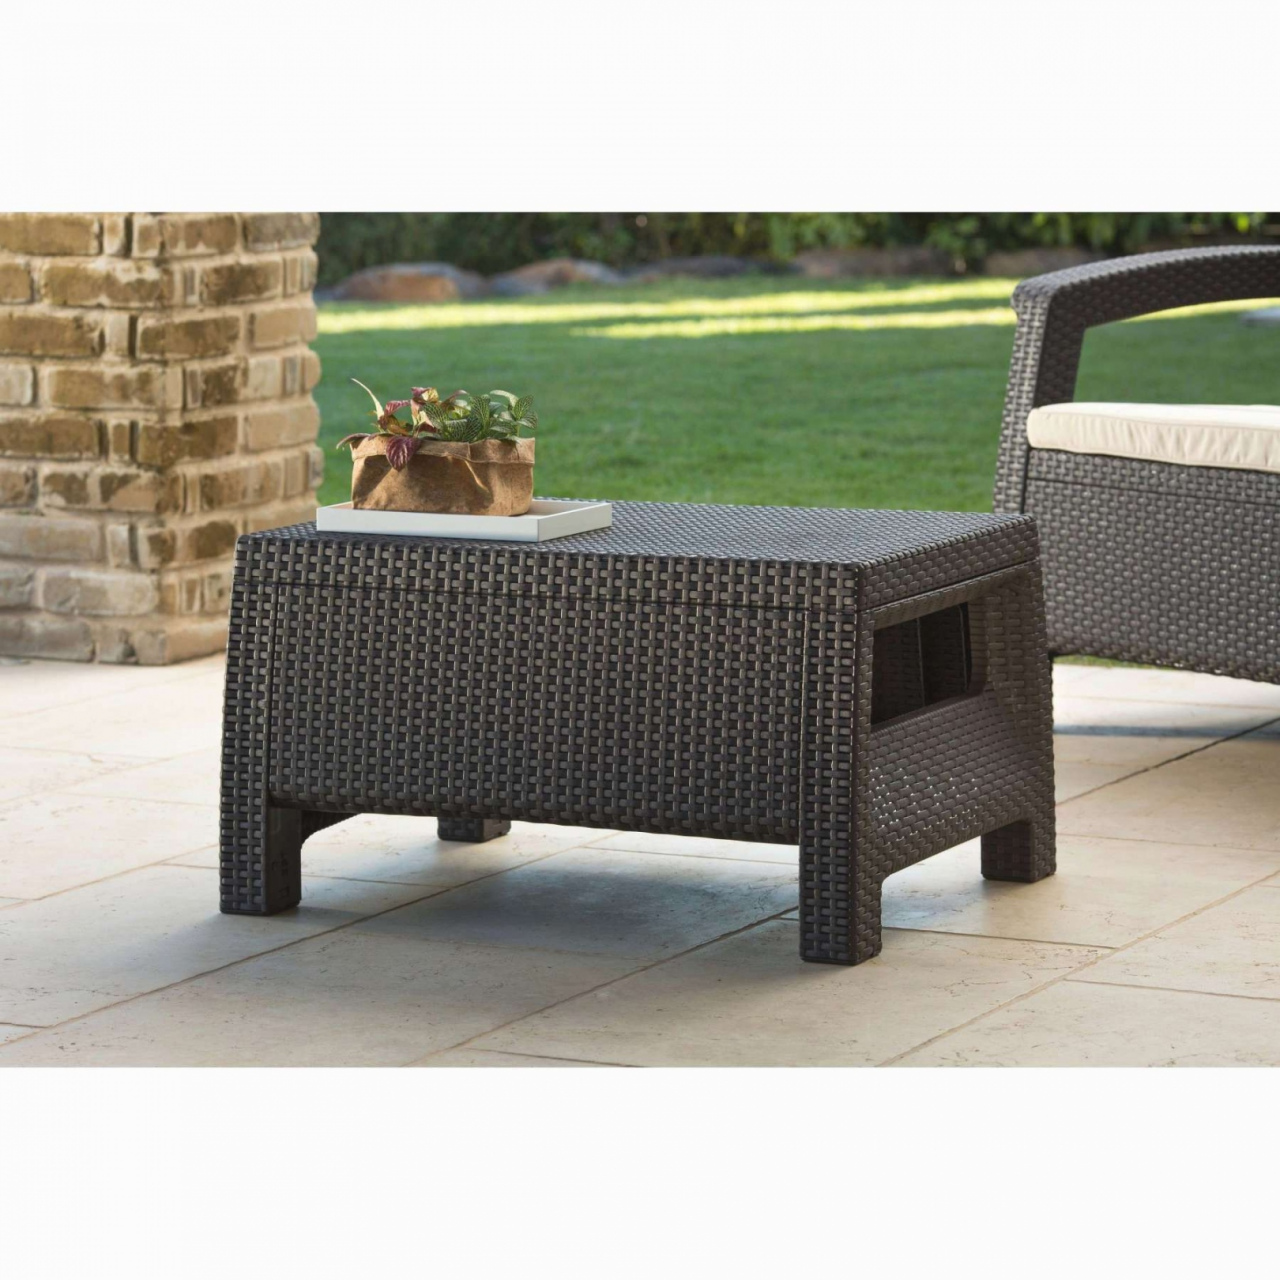 patio daybed rattan porch furniture basic wicker outdoor sofa 0d patio chairs durch patio daybed